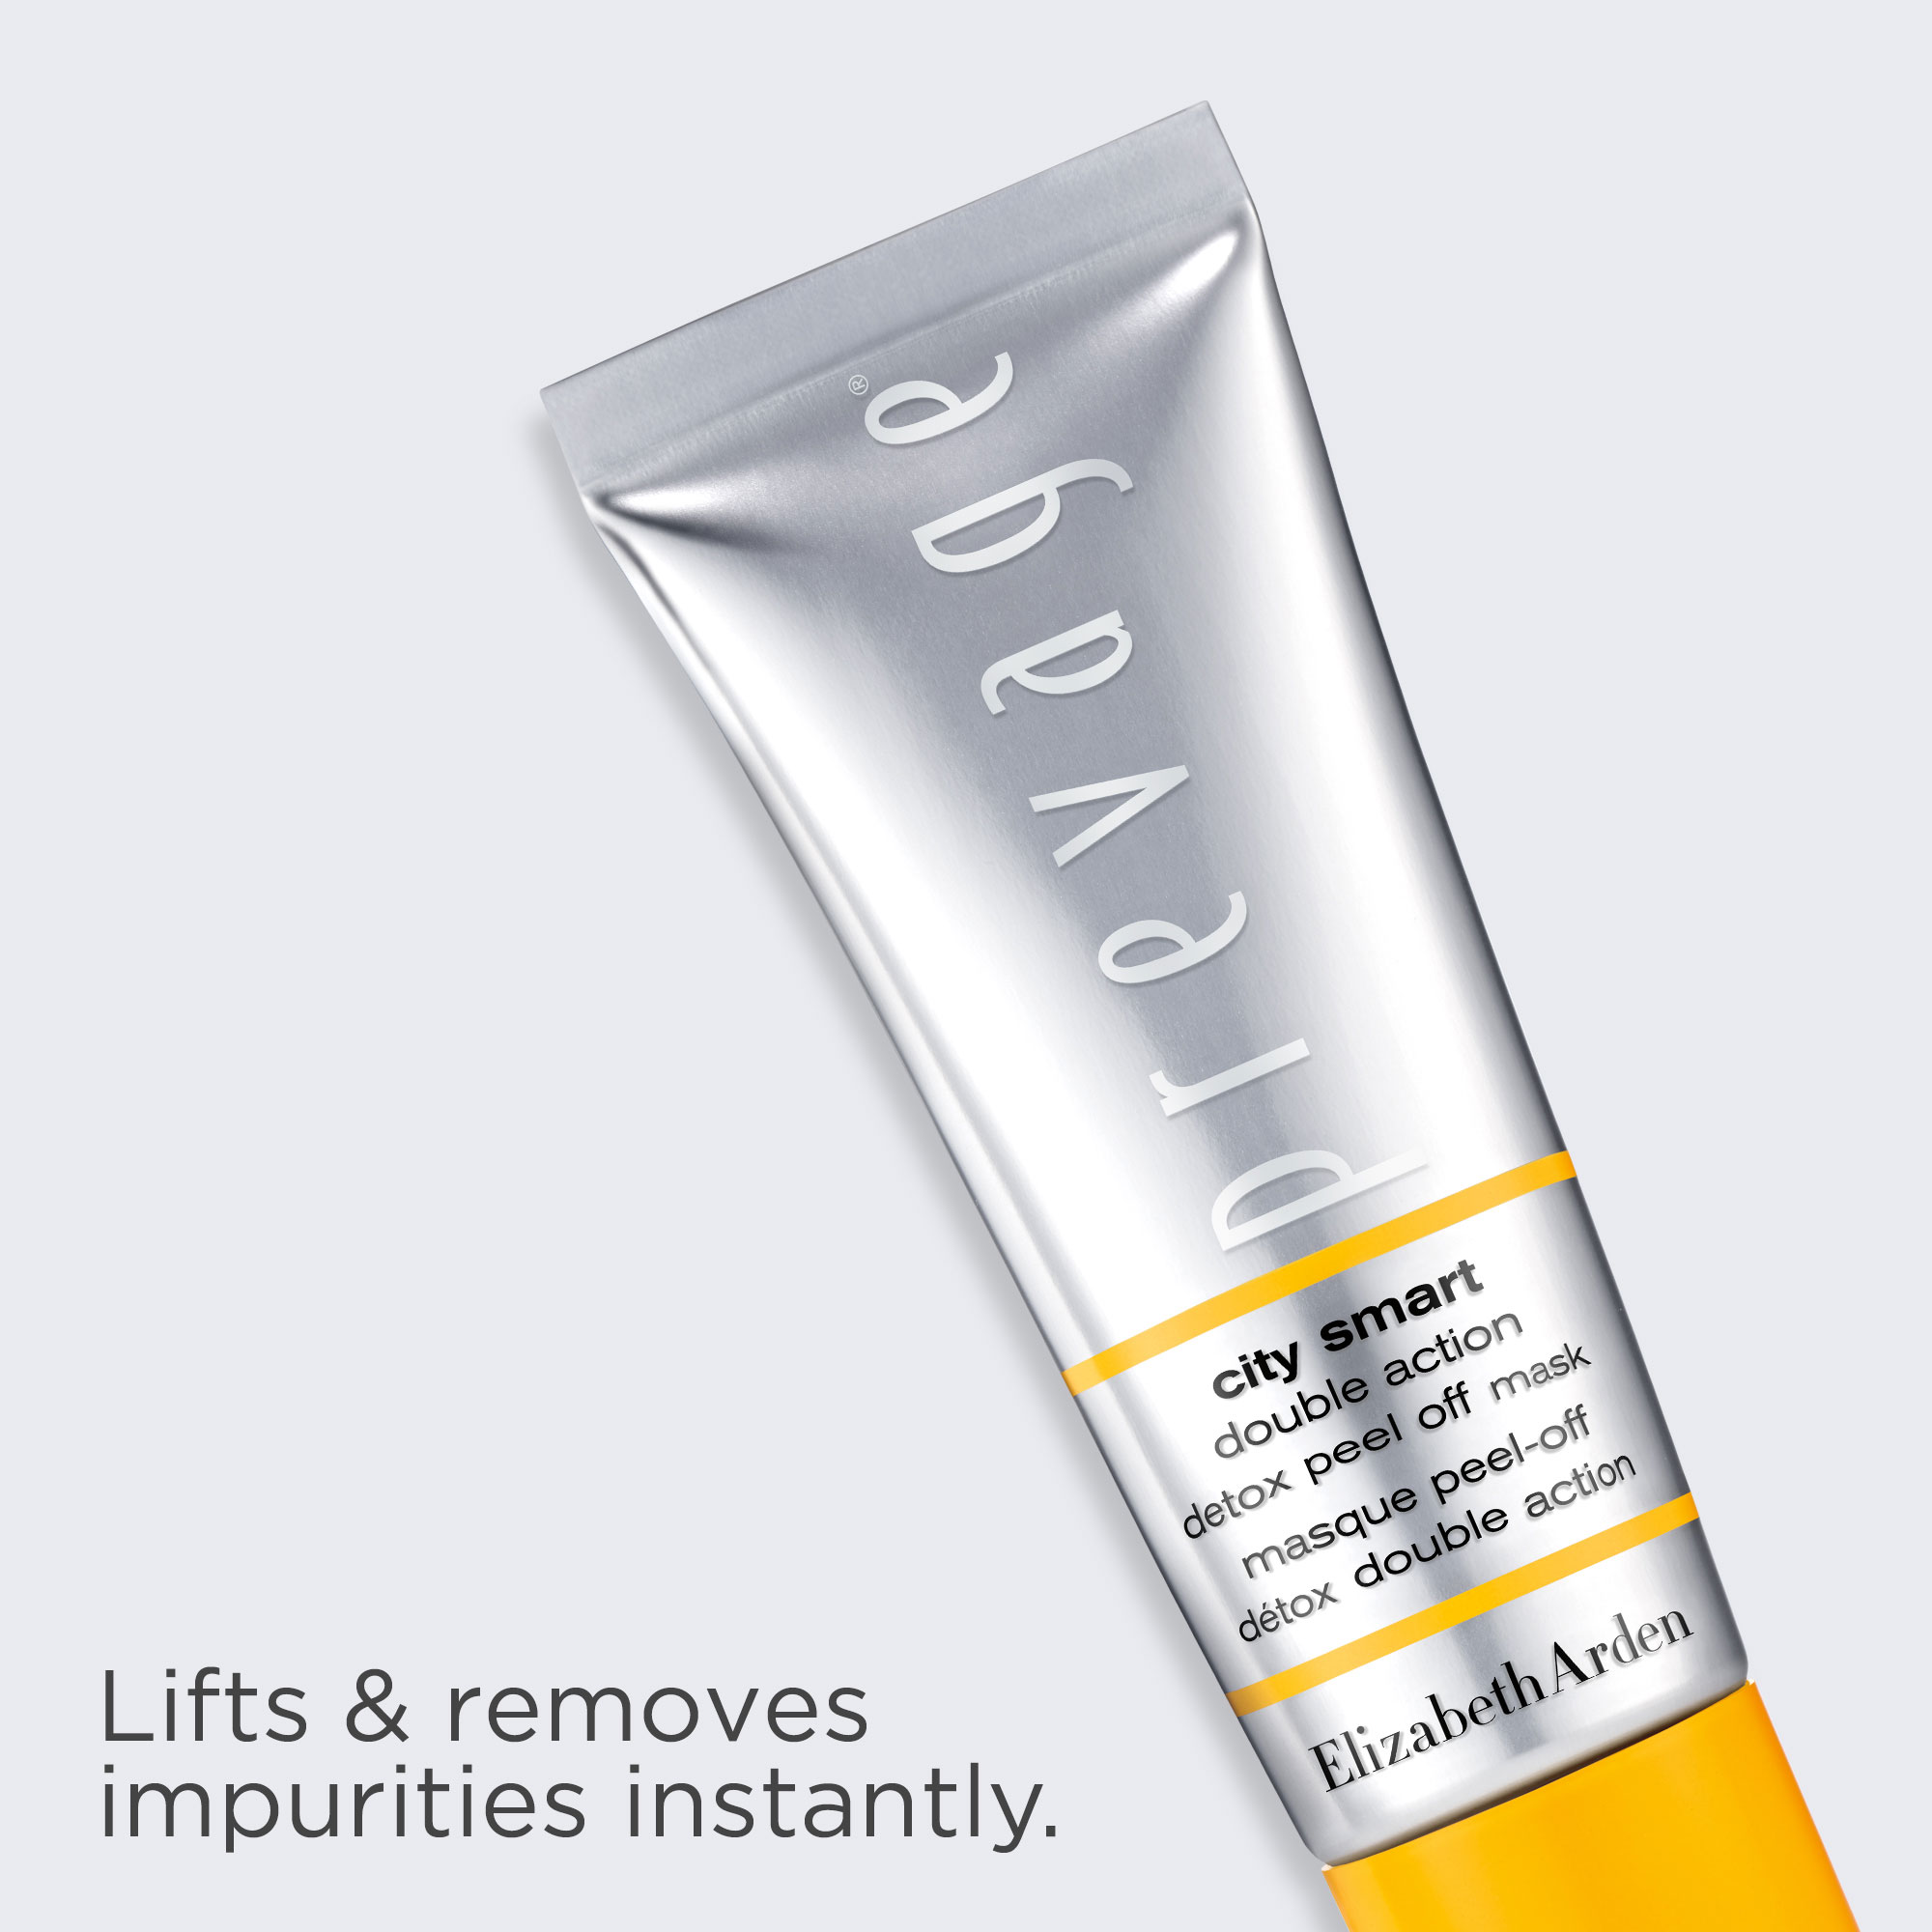 Prevage Detox Mask lifts and removes impurities instantly.